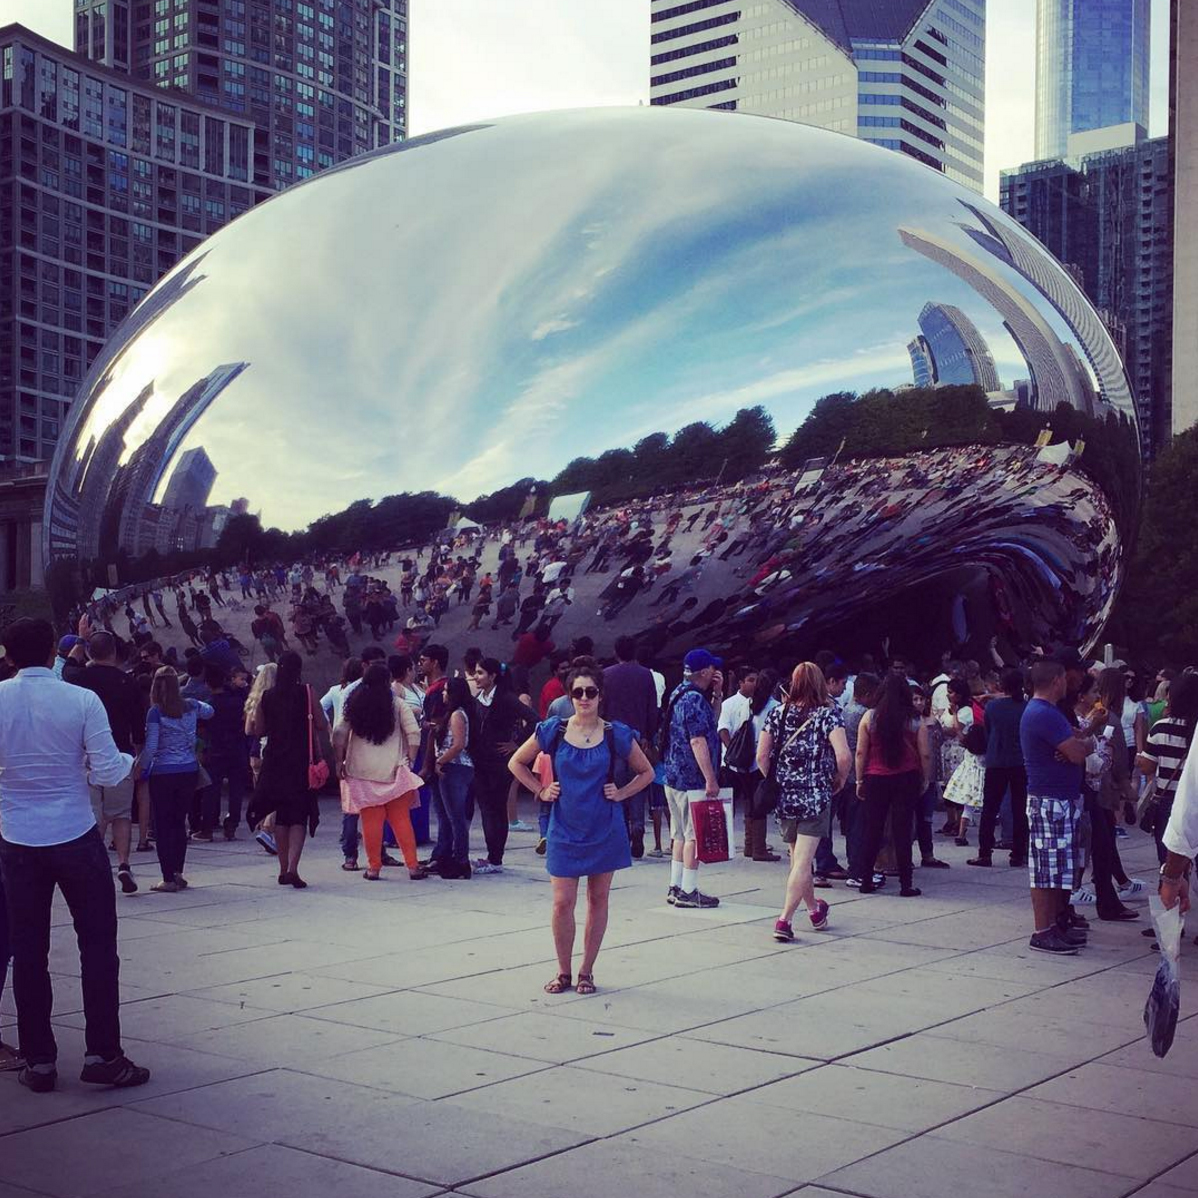 The Bean - Chicago, Illinois